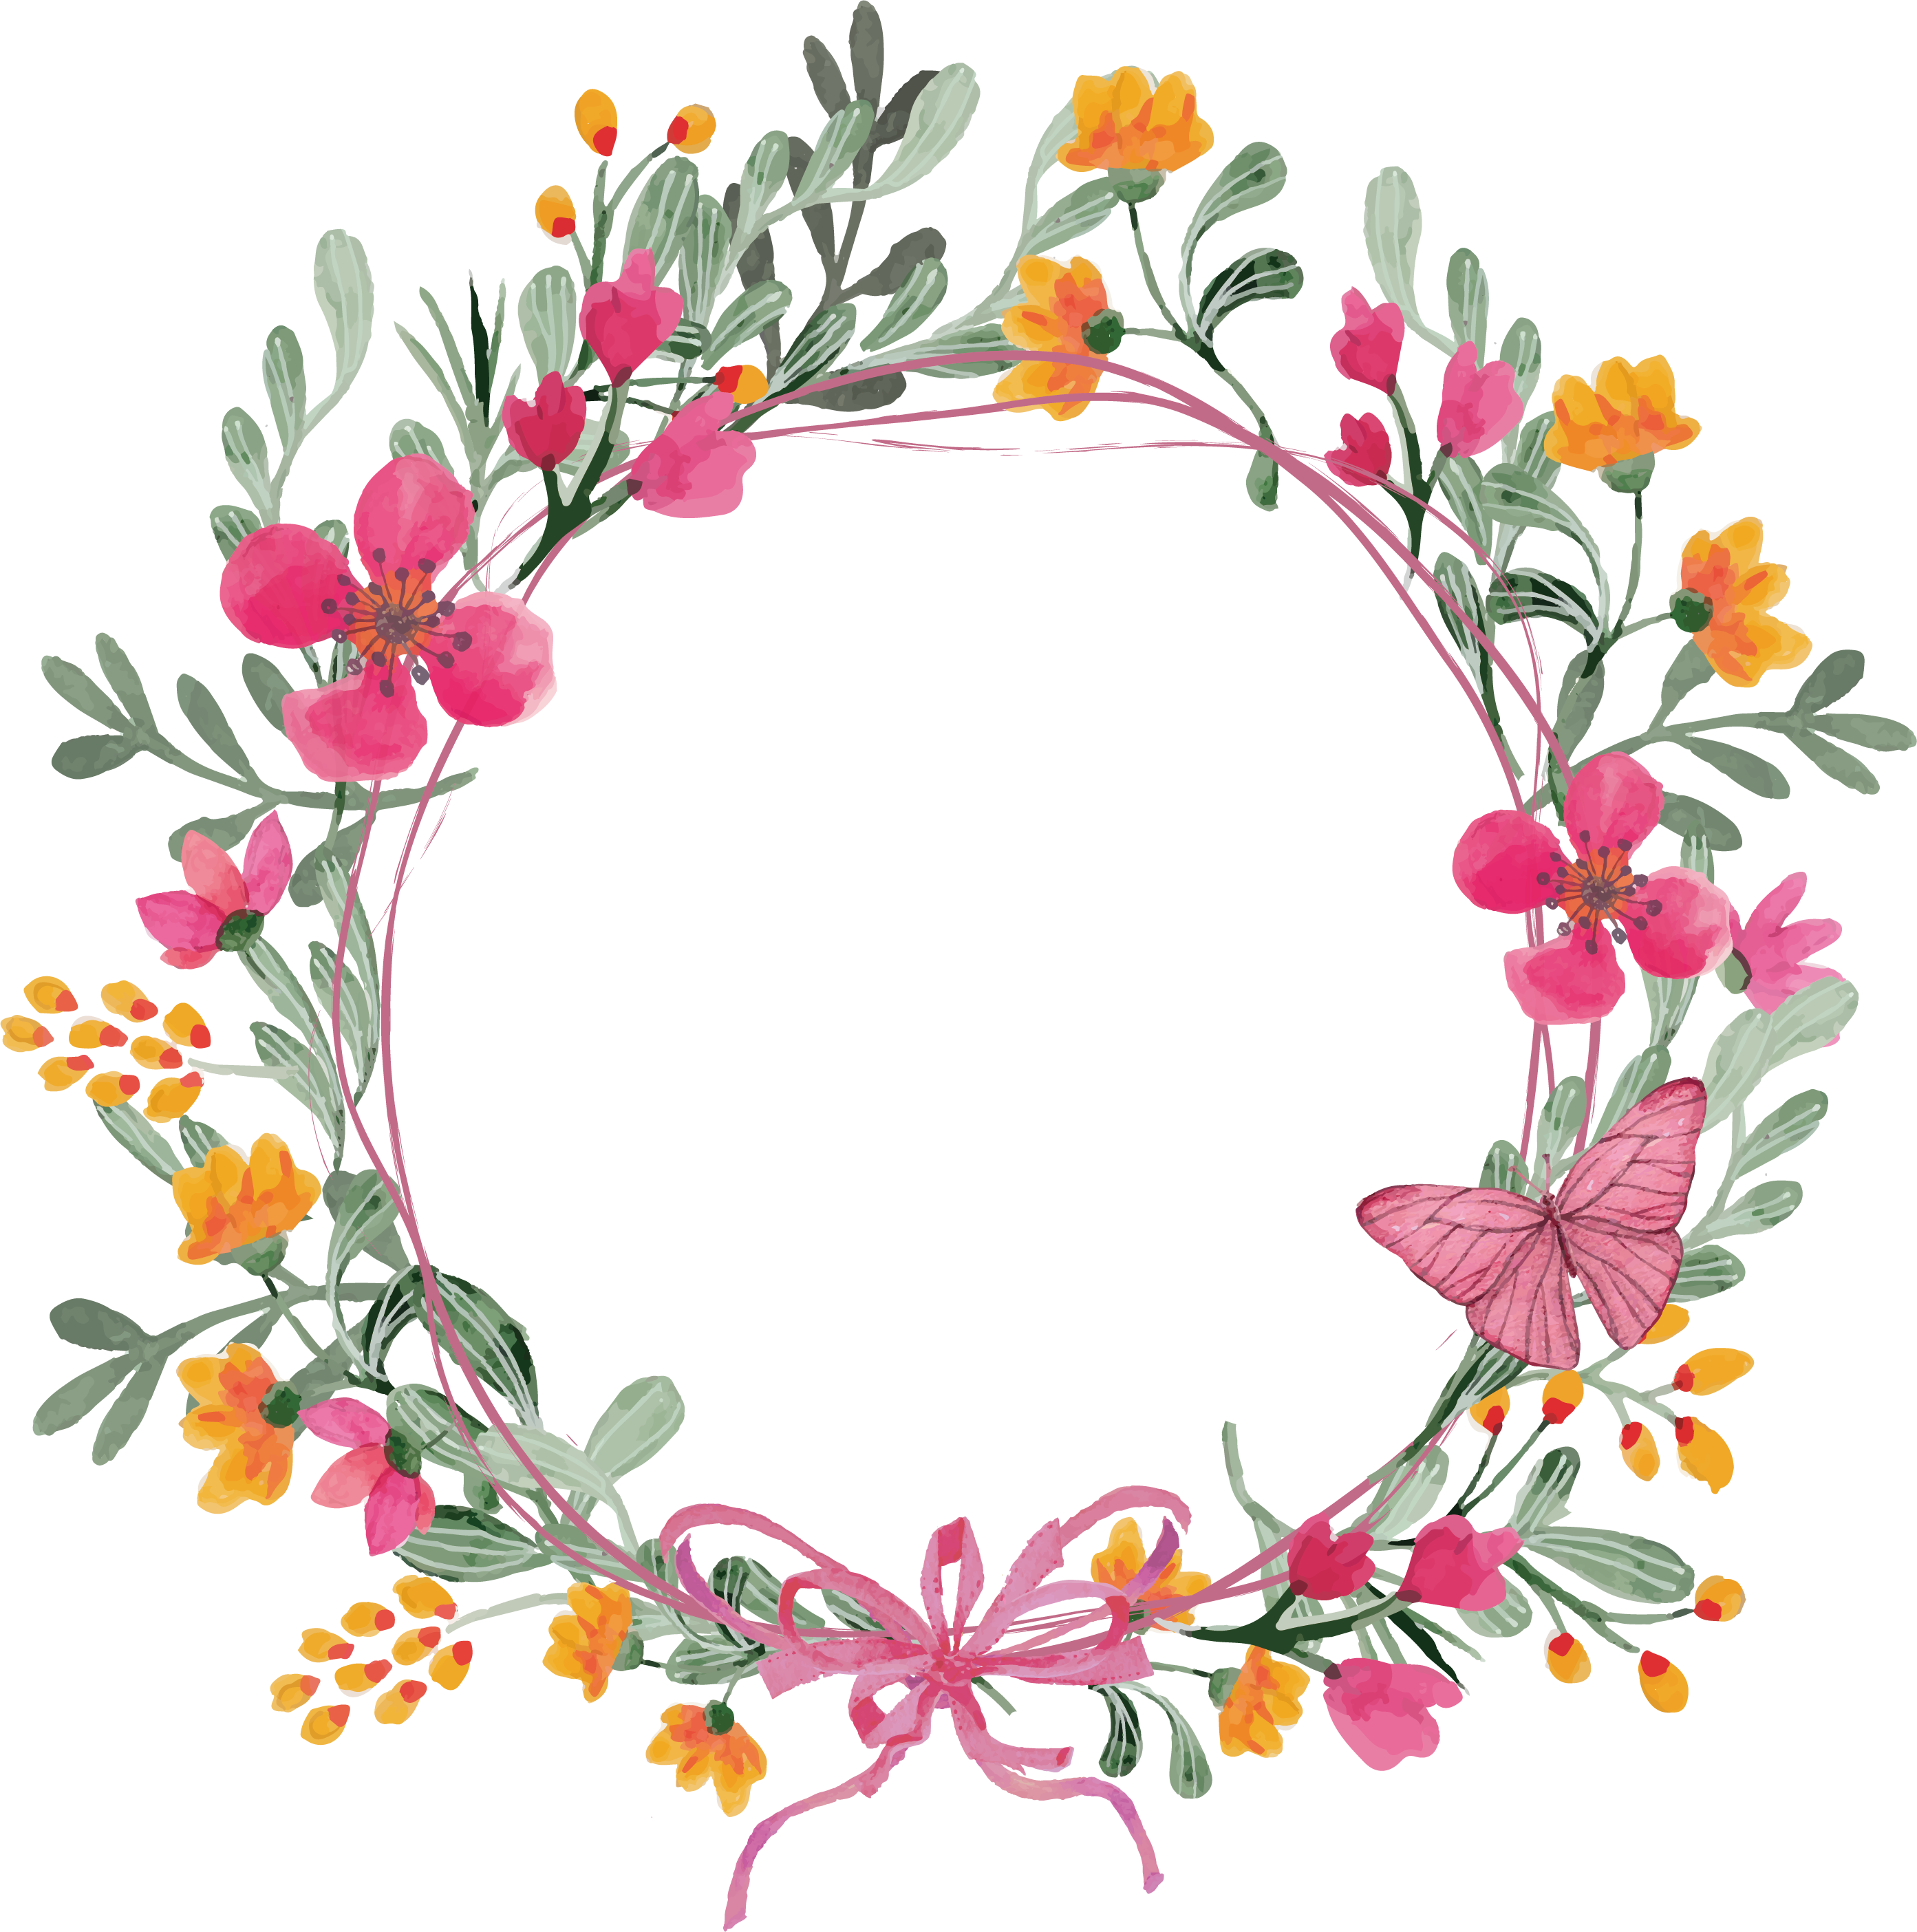 Flower garland png. Pink butterfly wreath transprent